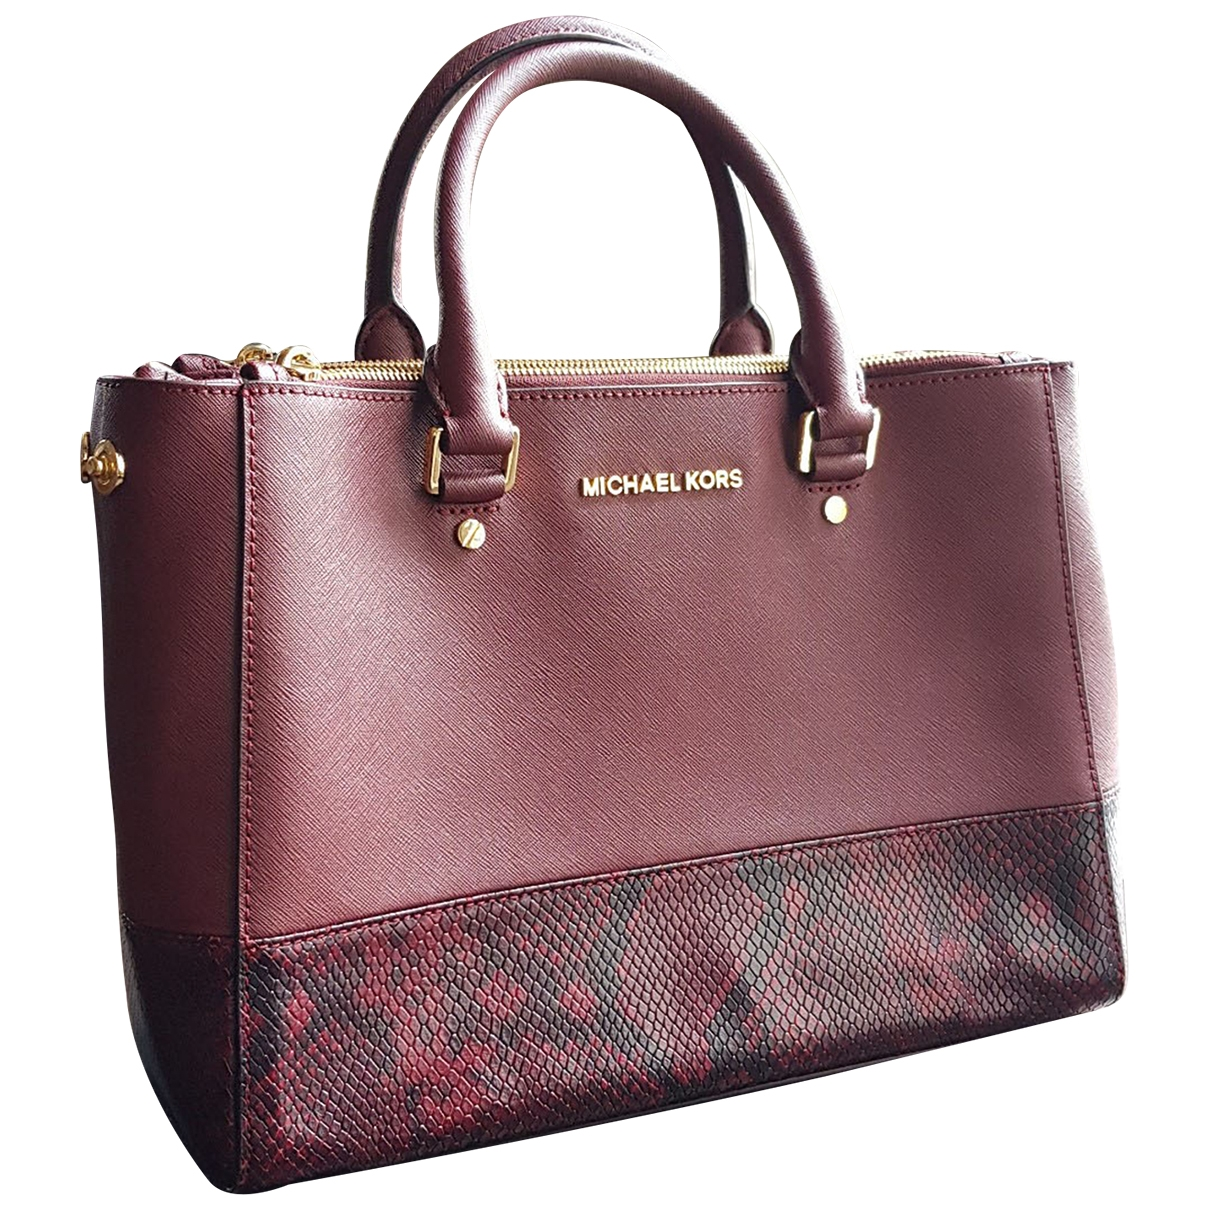 Michael Kors Savannah Handtasche in  Bordeauxrot Leder